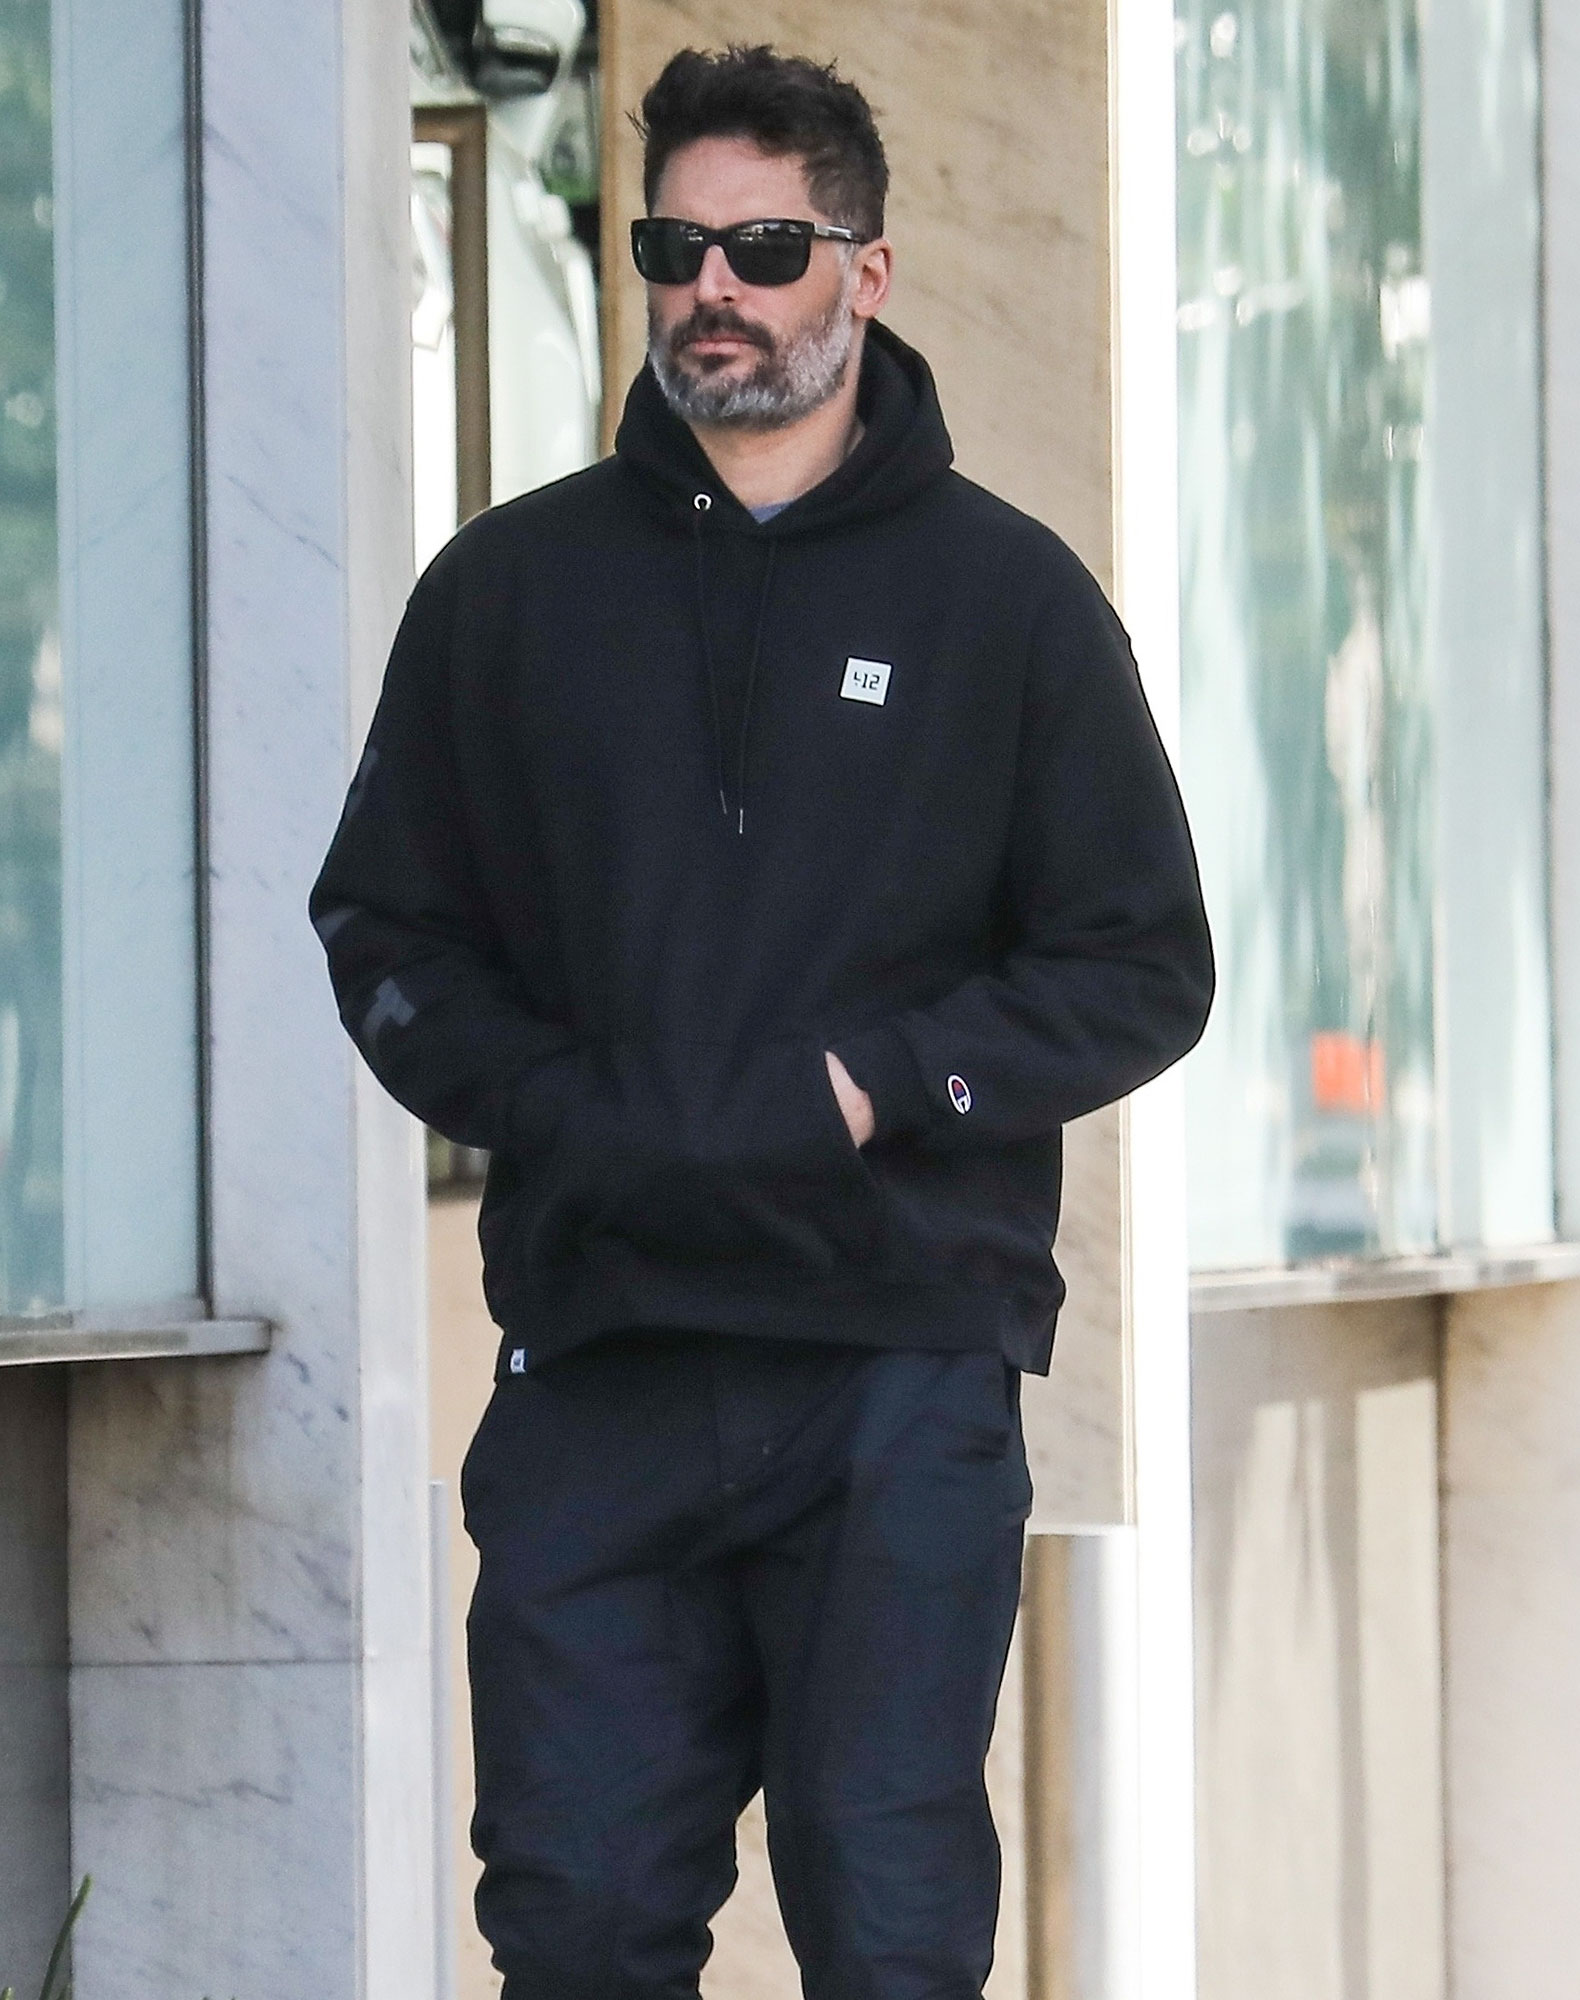 *EXCLUSIVE* Joe Manganiello heads out to grab breakfast from New York Water Bagel Eatery